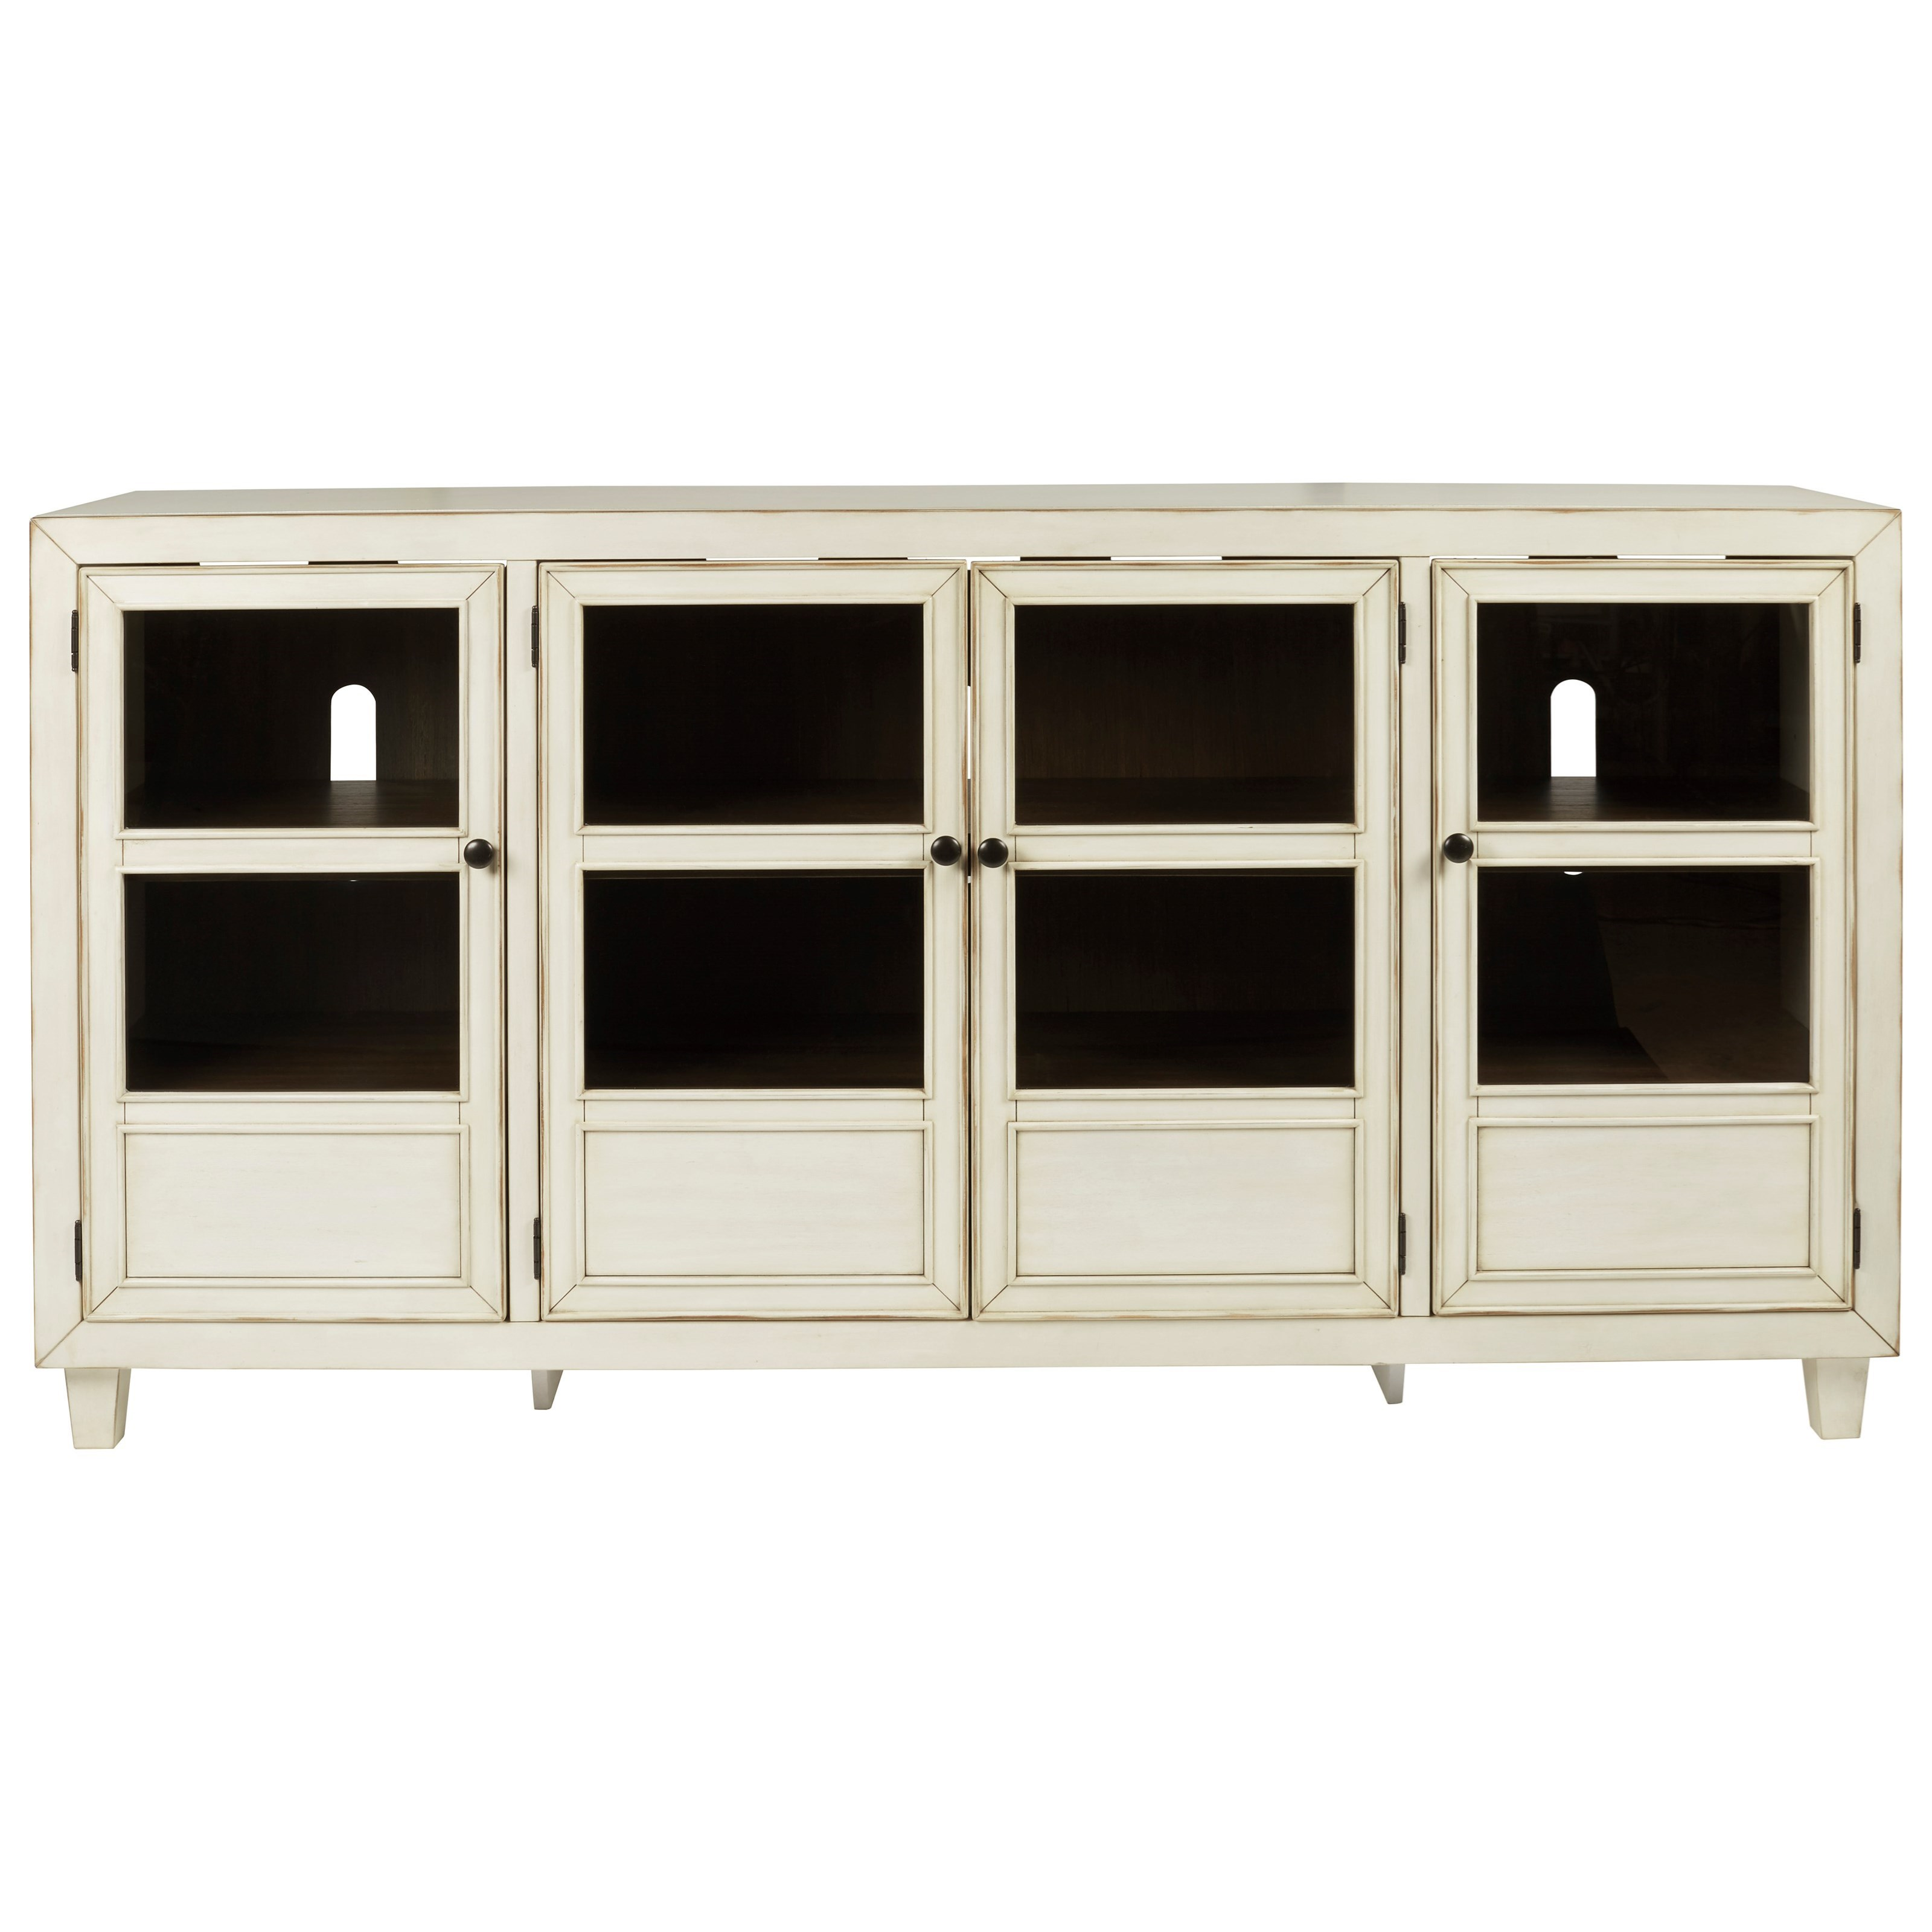 Deanford Accent Cabinet by Signature Design by Ashley at Northeast Factory Direct